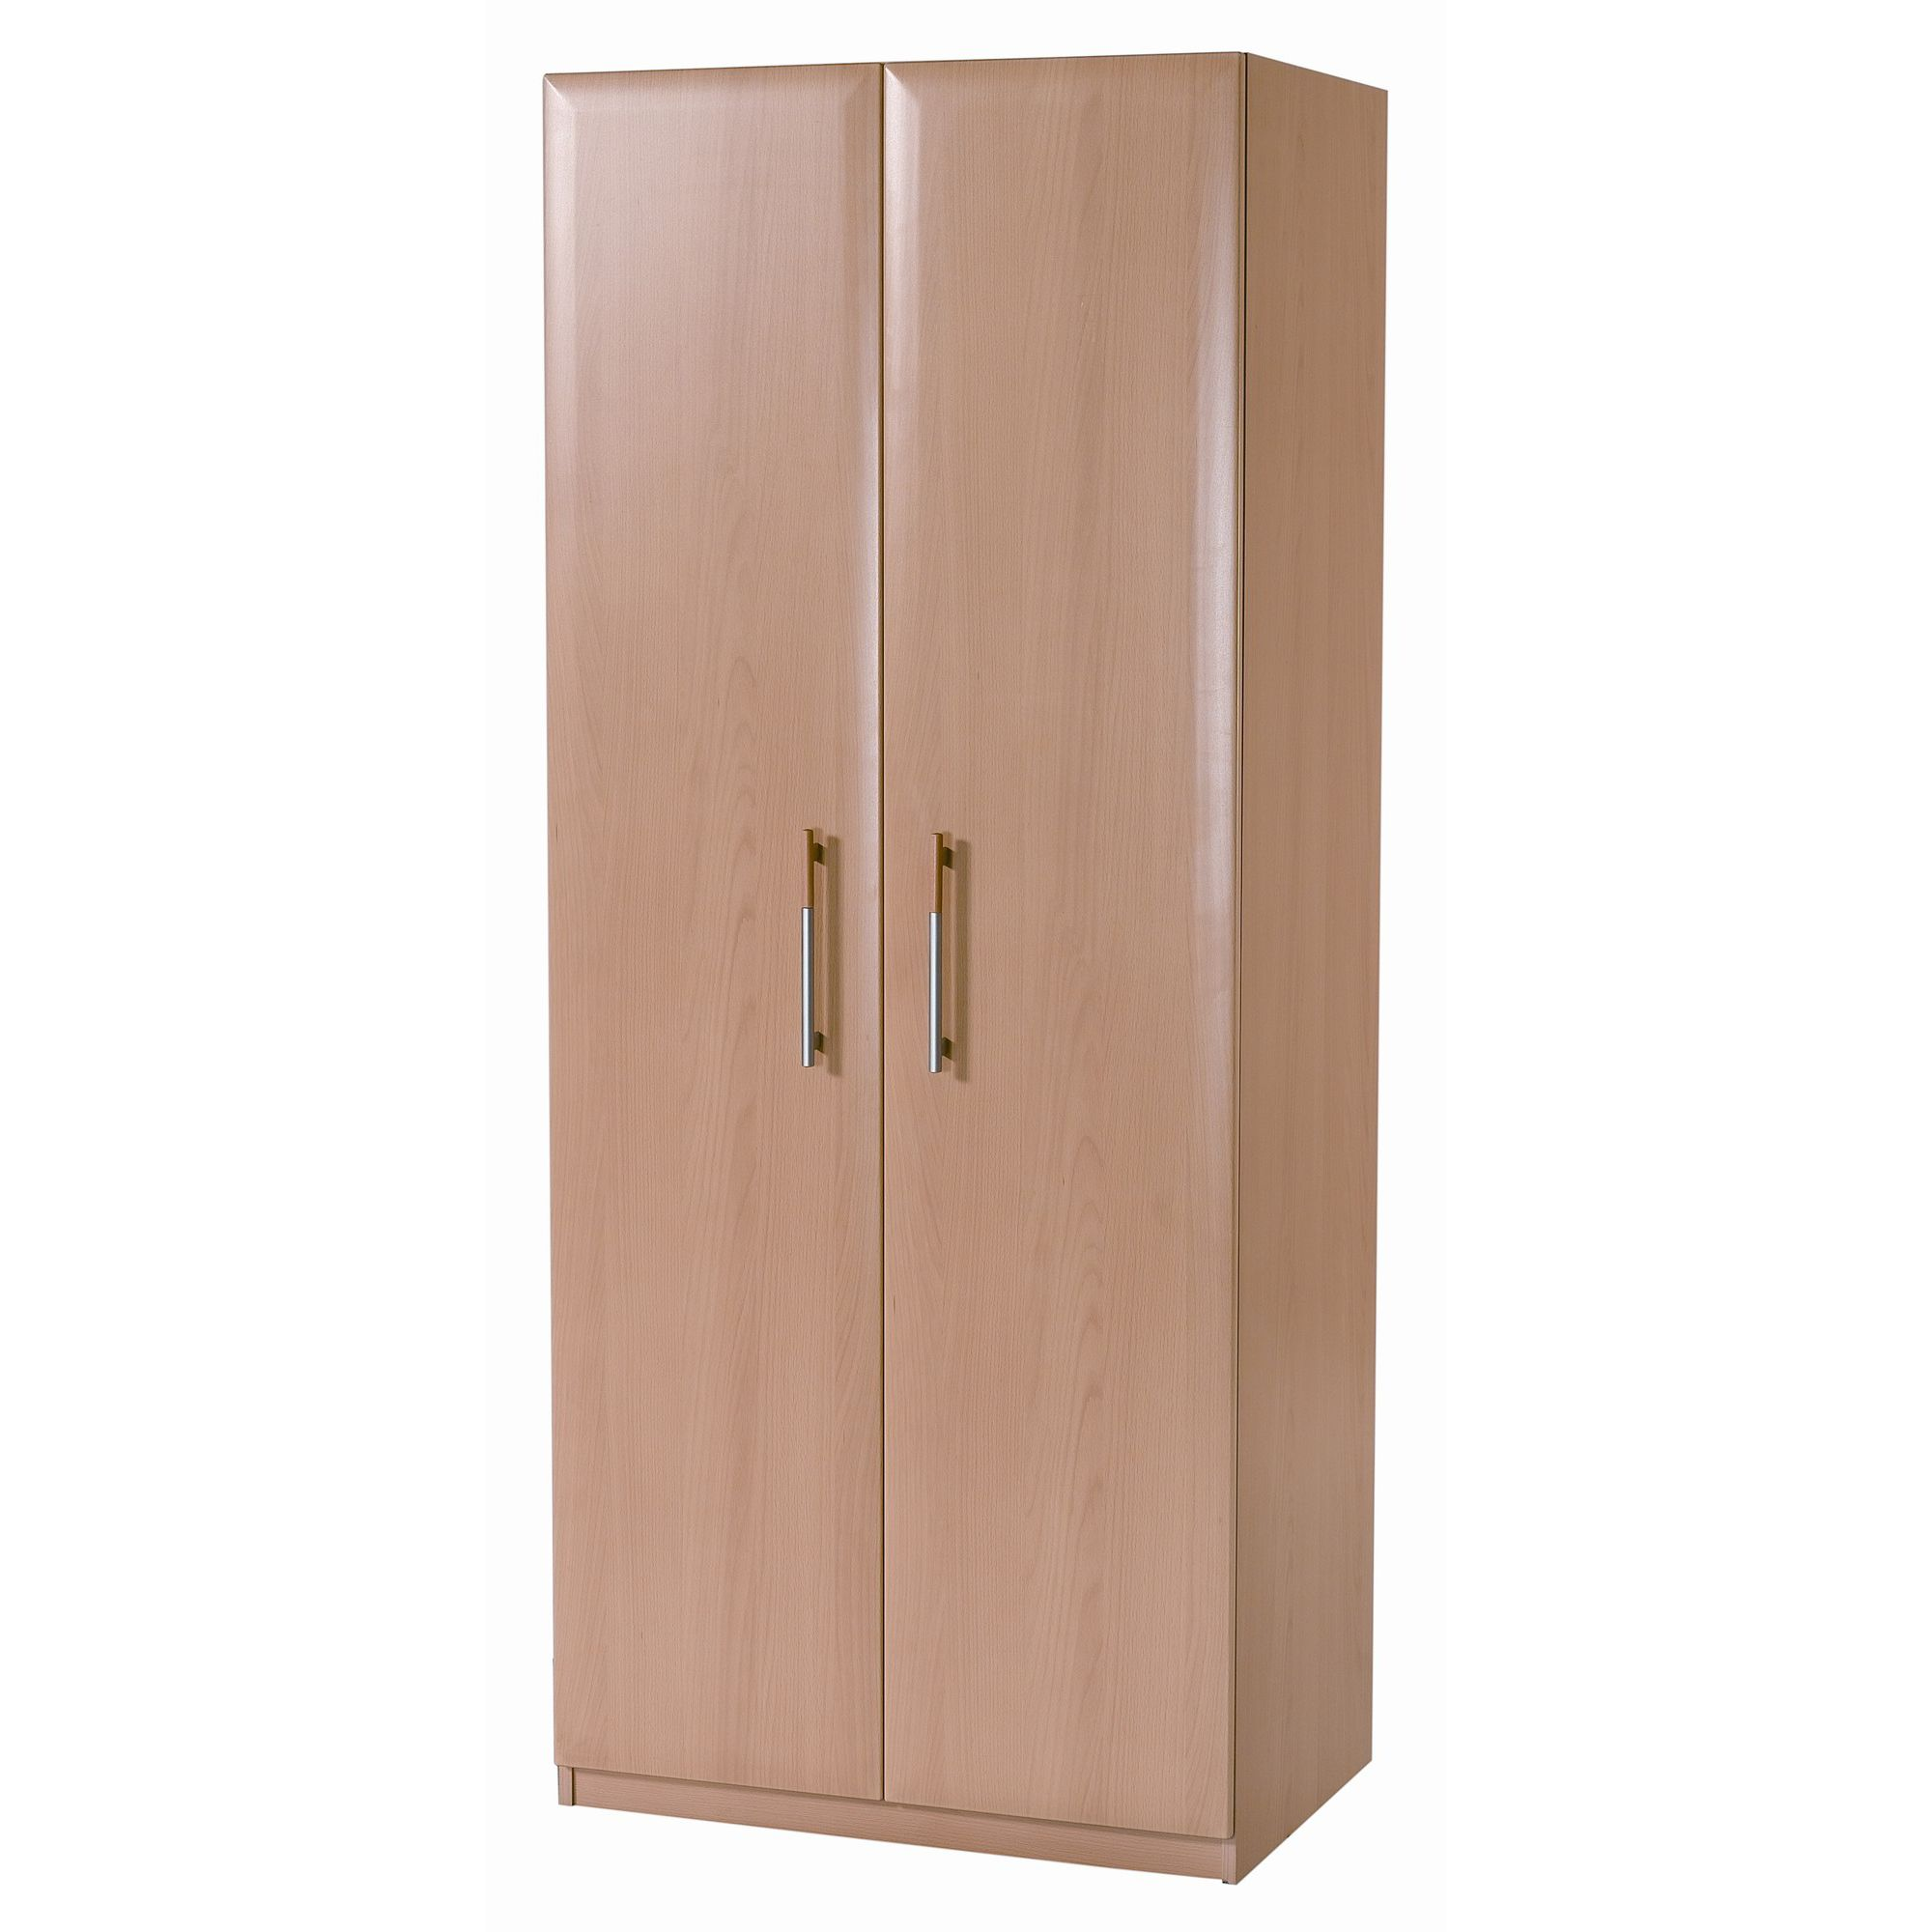 Alto Furniture Visualise Awake Two Door Wardrobe in Light Tyrolean Beech at Tesco Direct